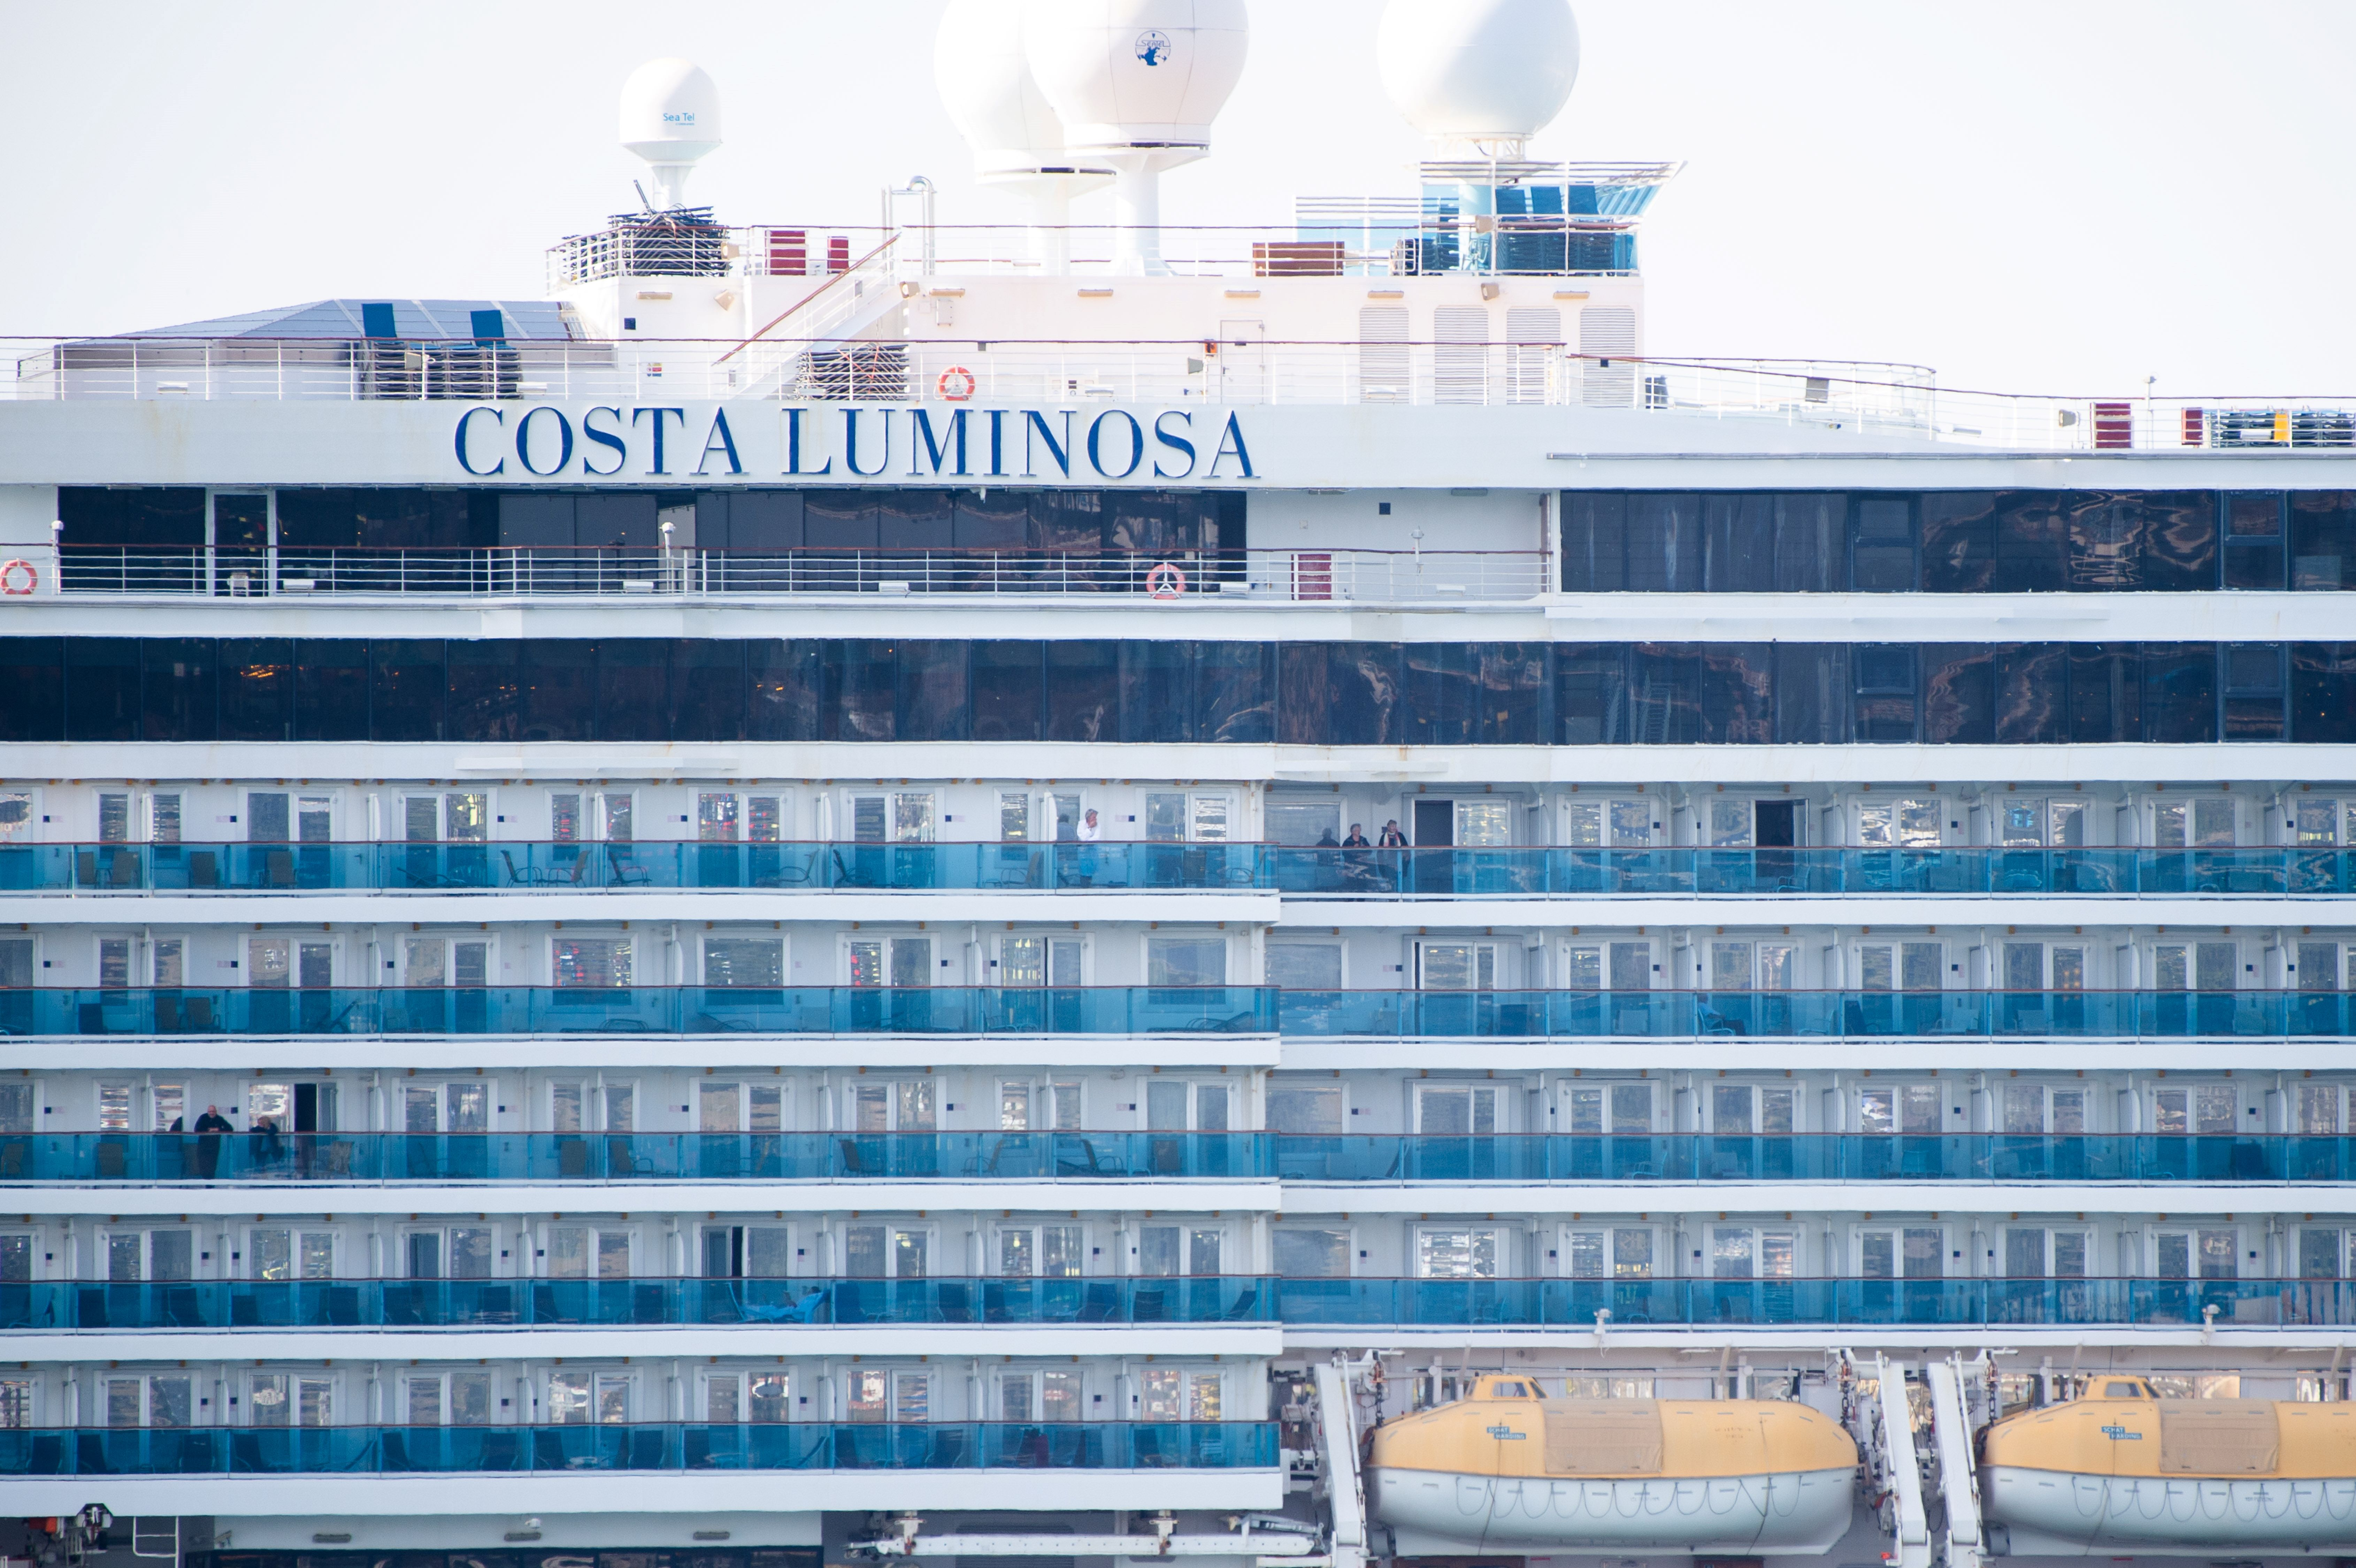 Passengers on the cruise ship Costa Luminosa are seen as the ship is moored at Marseille harbor on March 20, 2020. The Costa Luminosa is under quarantine due to several cases of COVID-19 among the passengers.